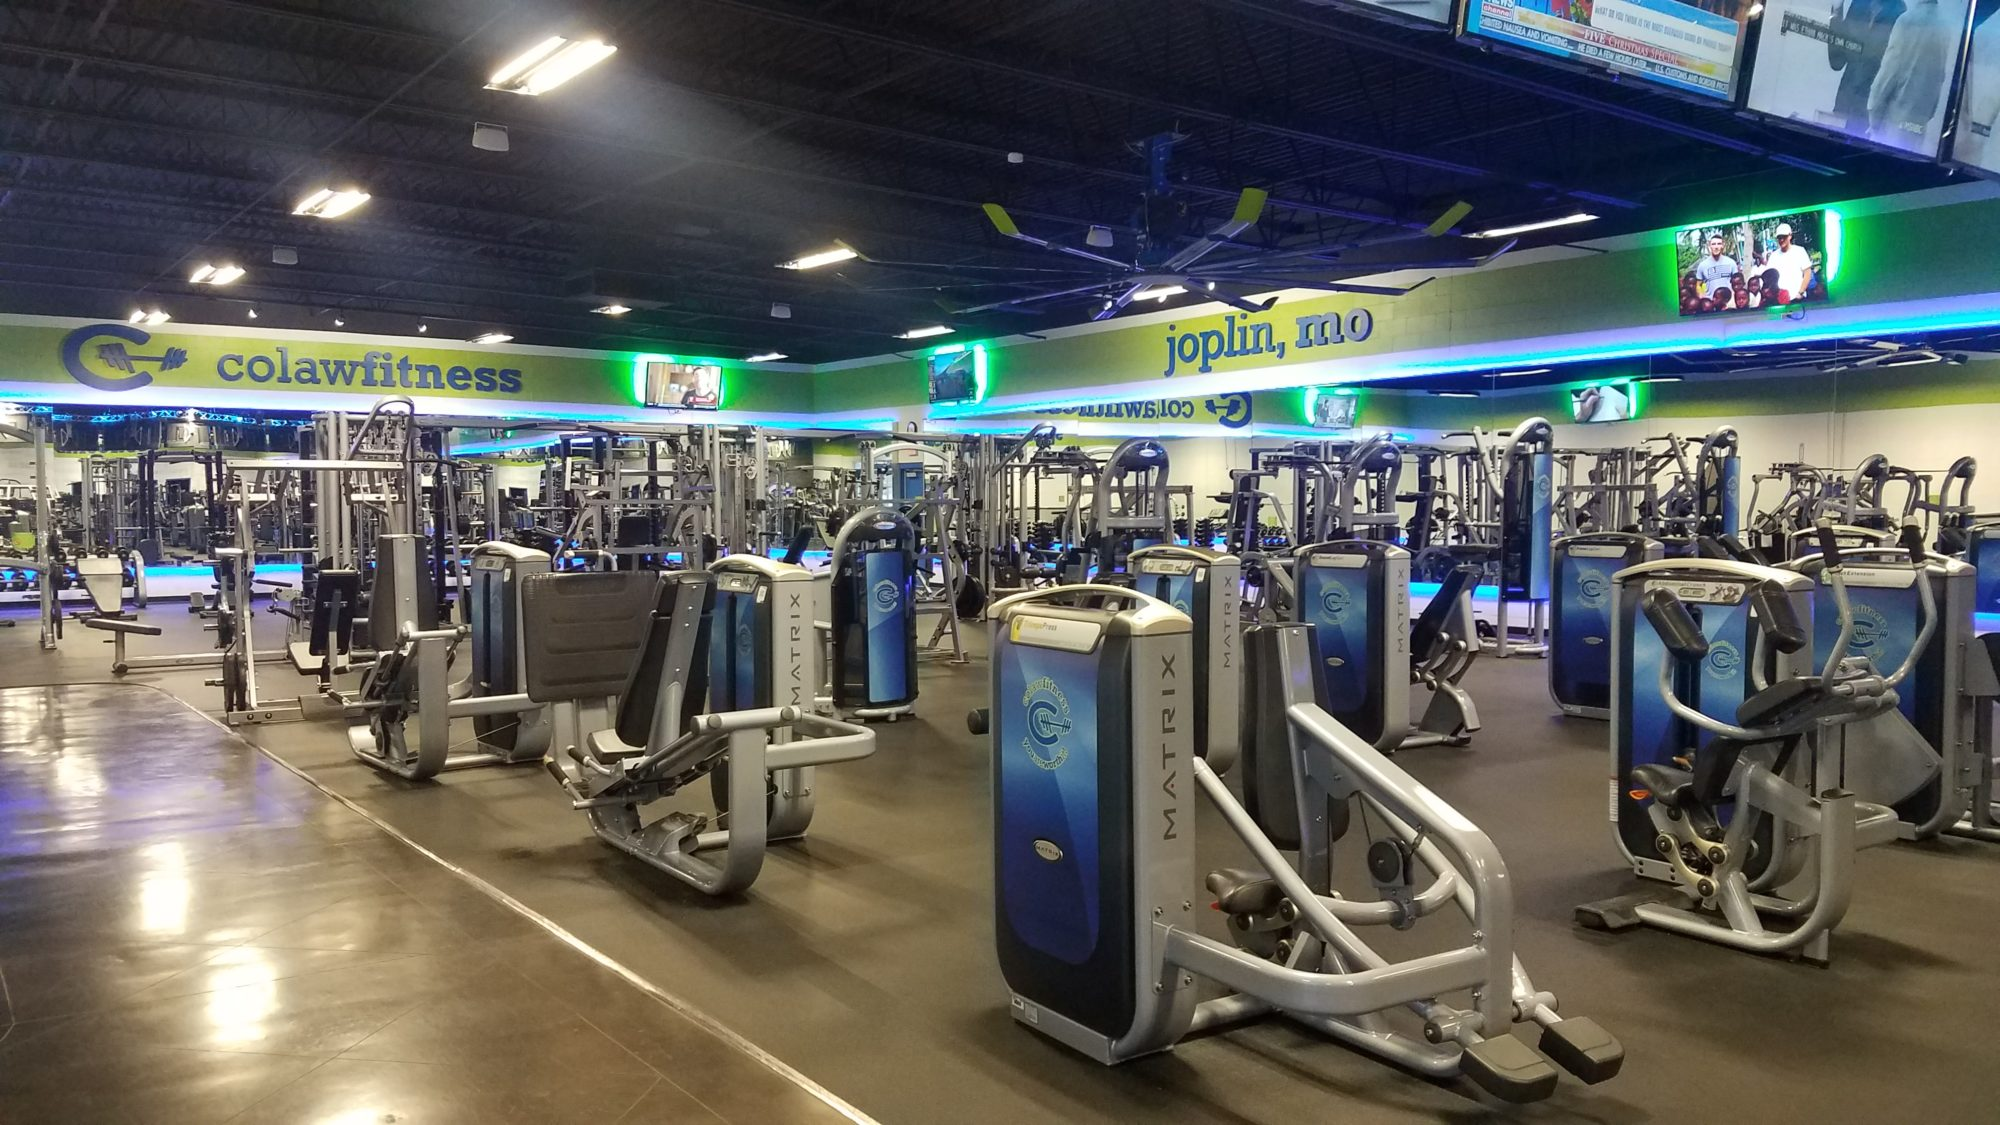 Lowest Price Gym Joplin